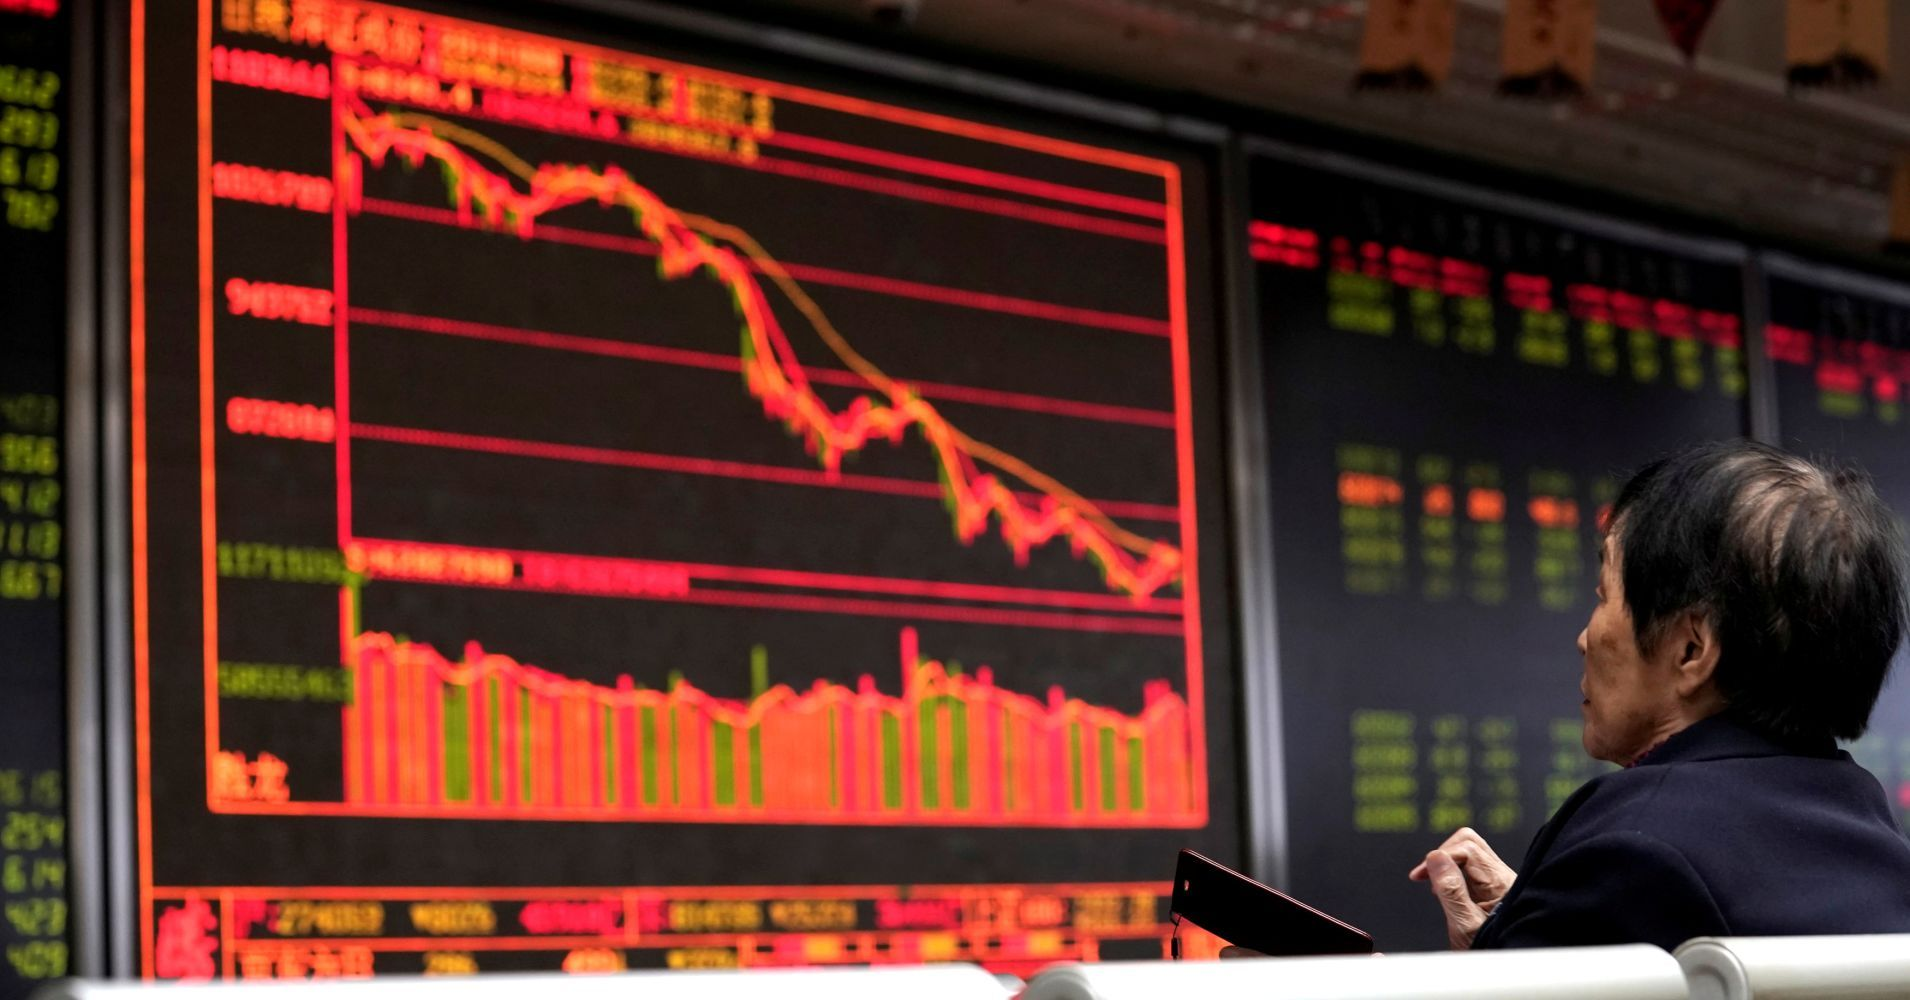 China S Stock Market Is Getting Pummeled And History Shows That Is